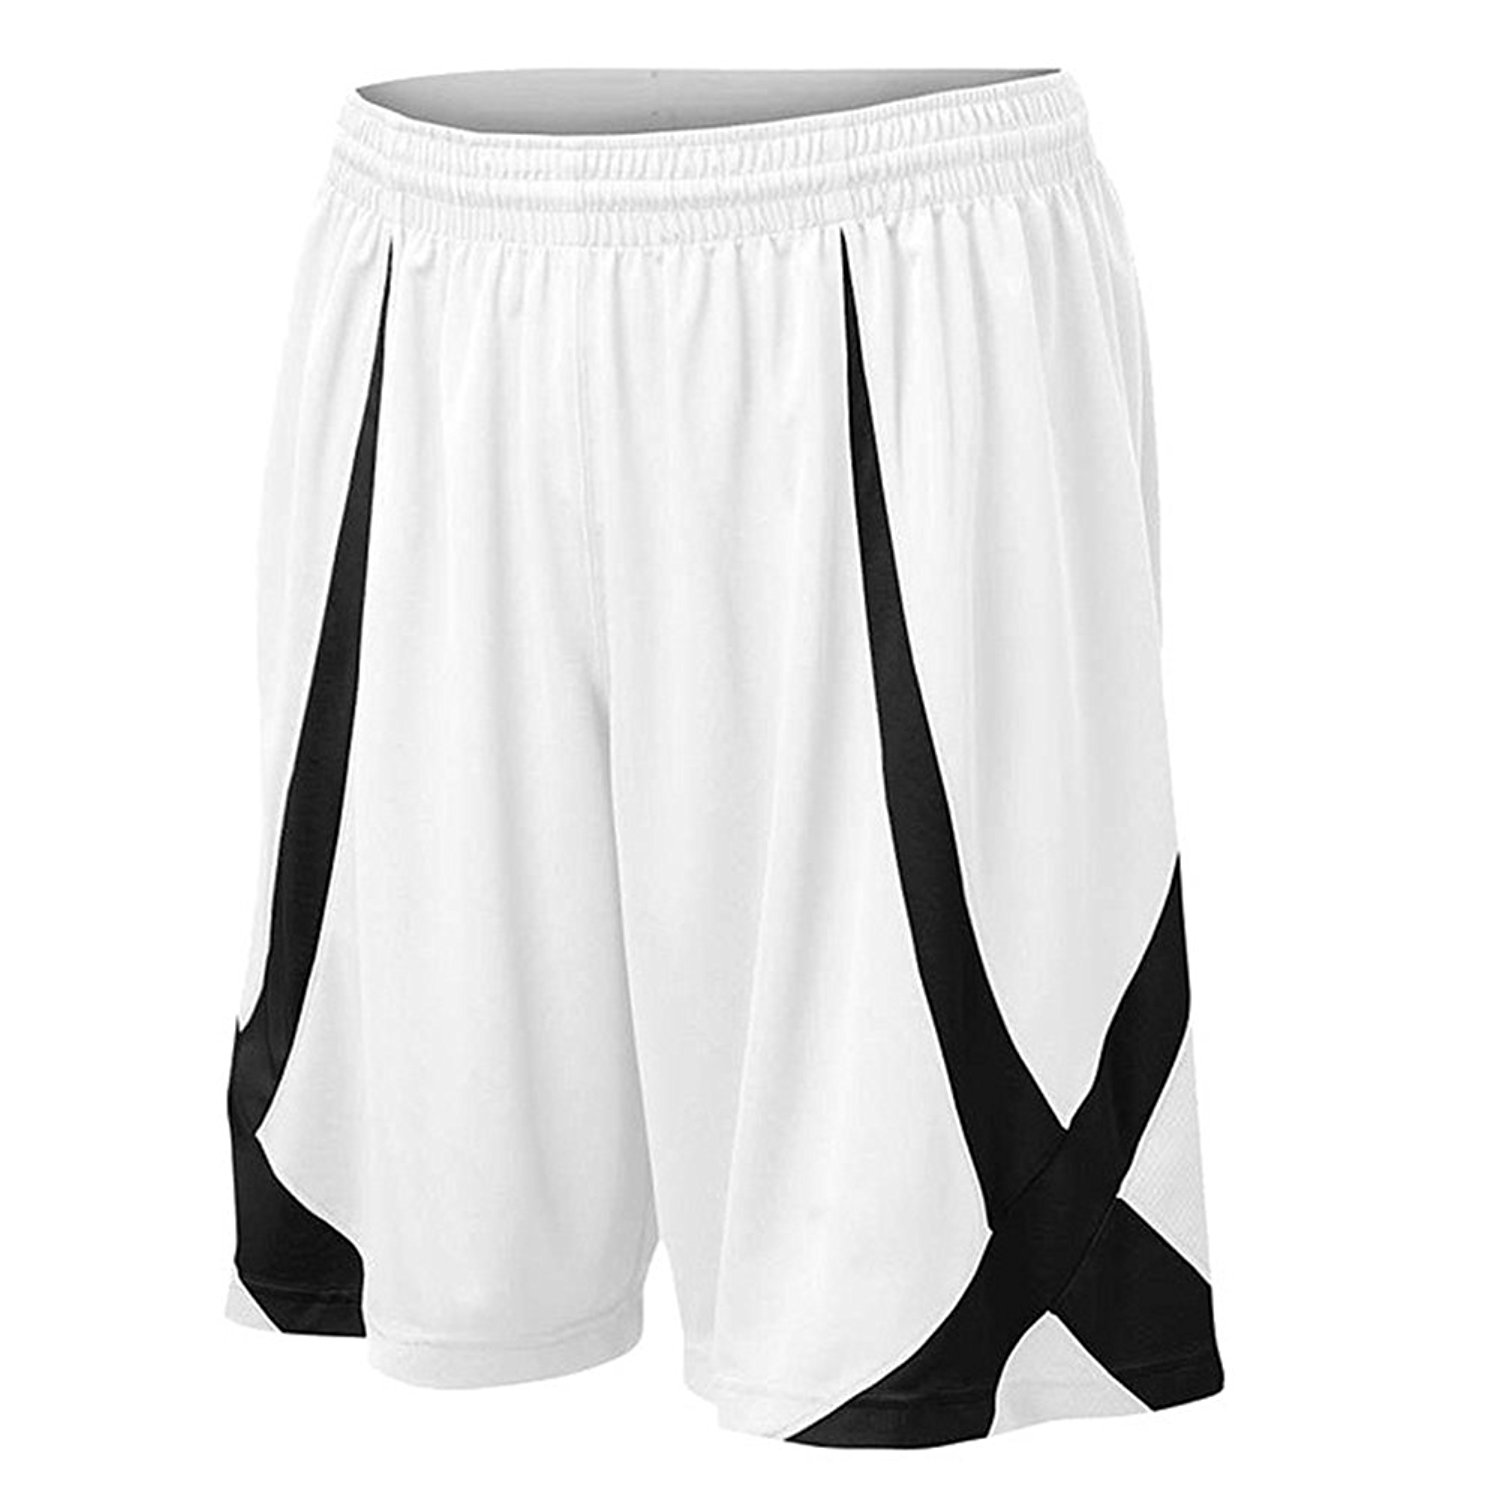 Black Basketball Shorts with Pockets